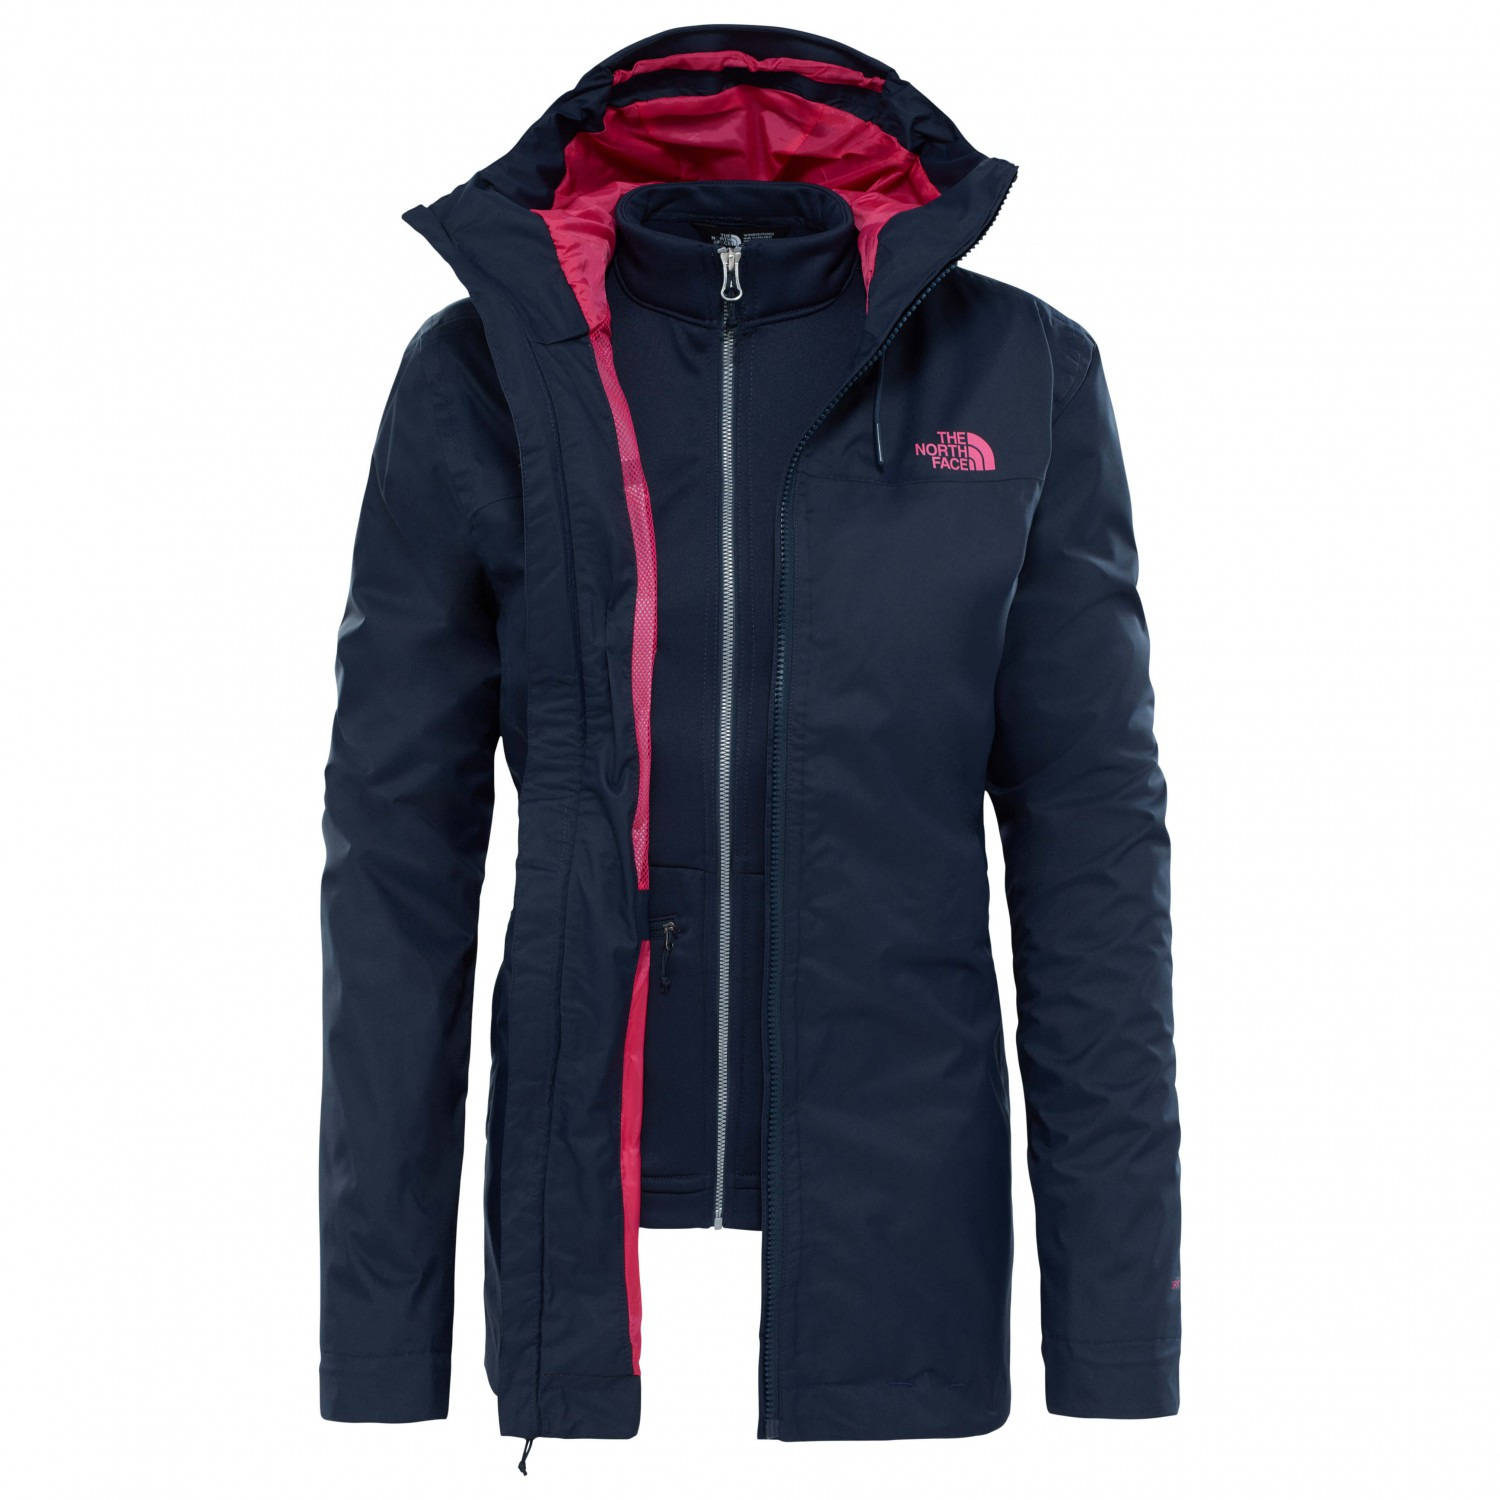 274ad5ef4 The North Face Morton Triclimate - 3-In-1 Jacket Women's | Buy ...